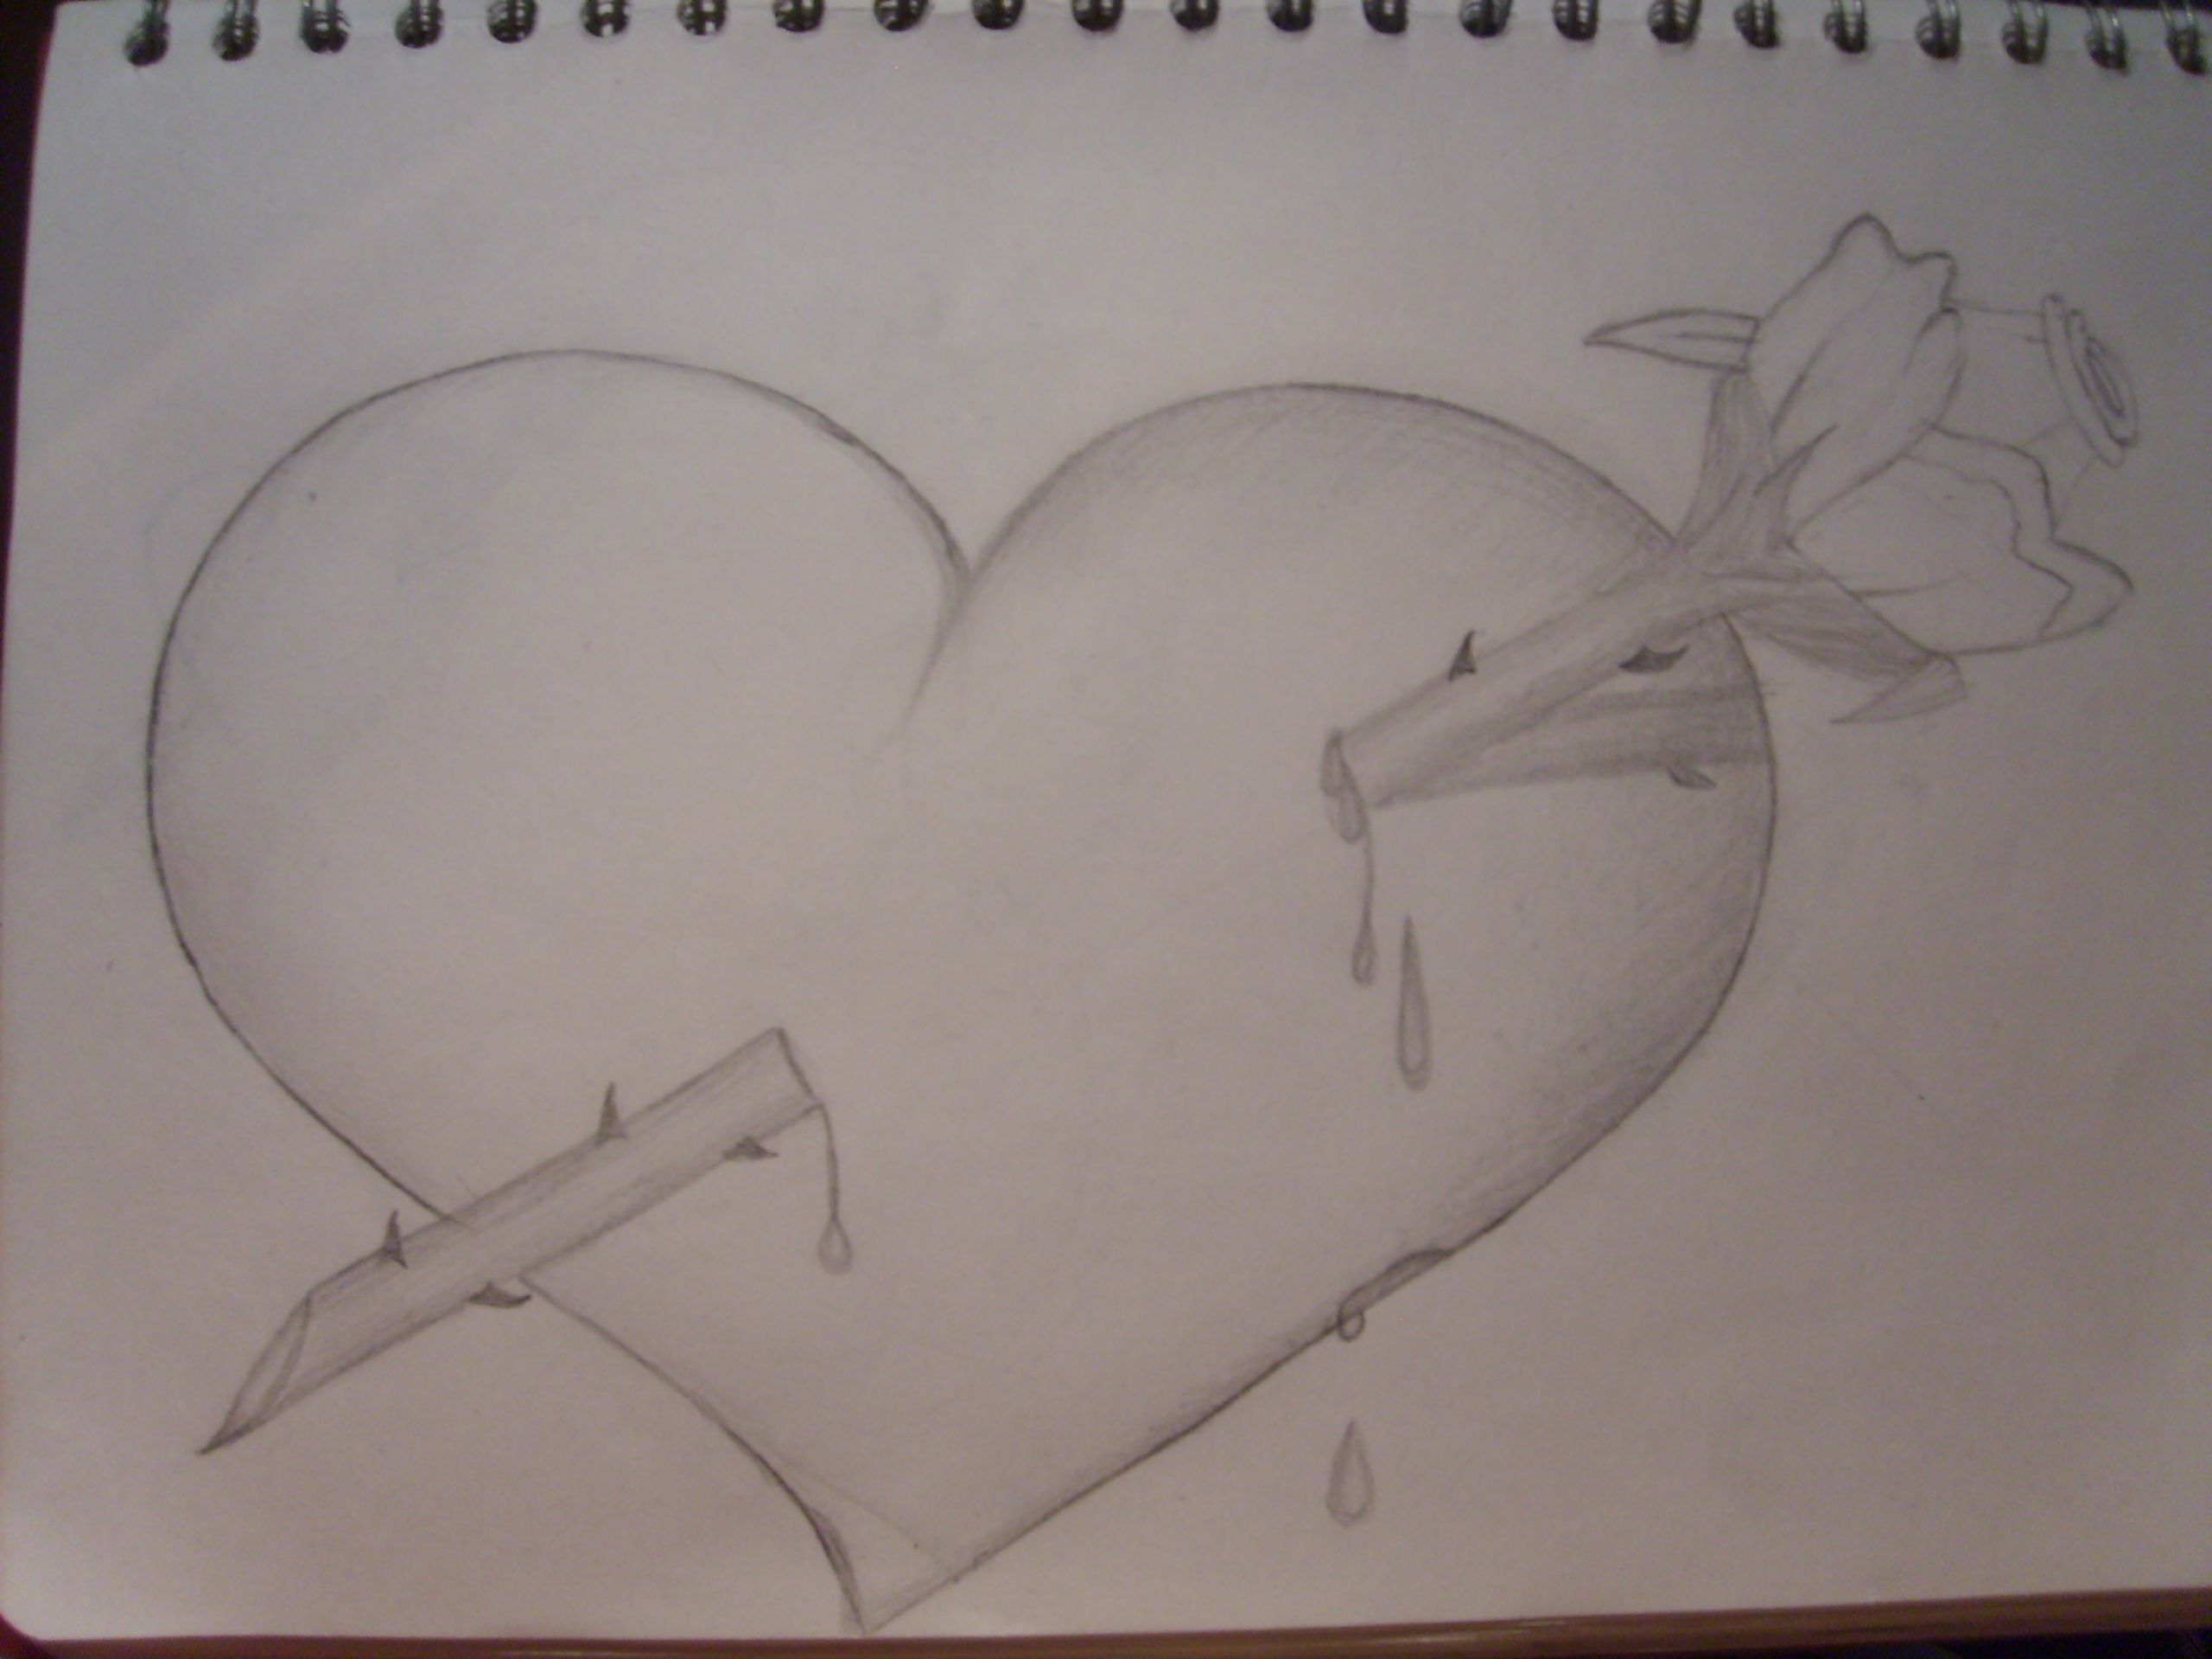 2560x1920 Pencil Sketches Of Hearts And Roses Broken Hearts Drawings Broken